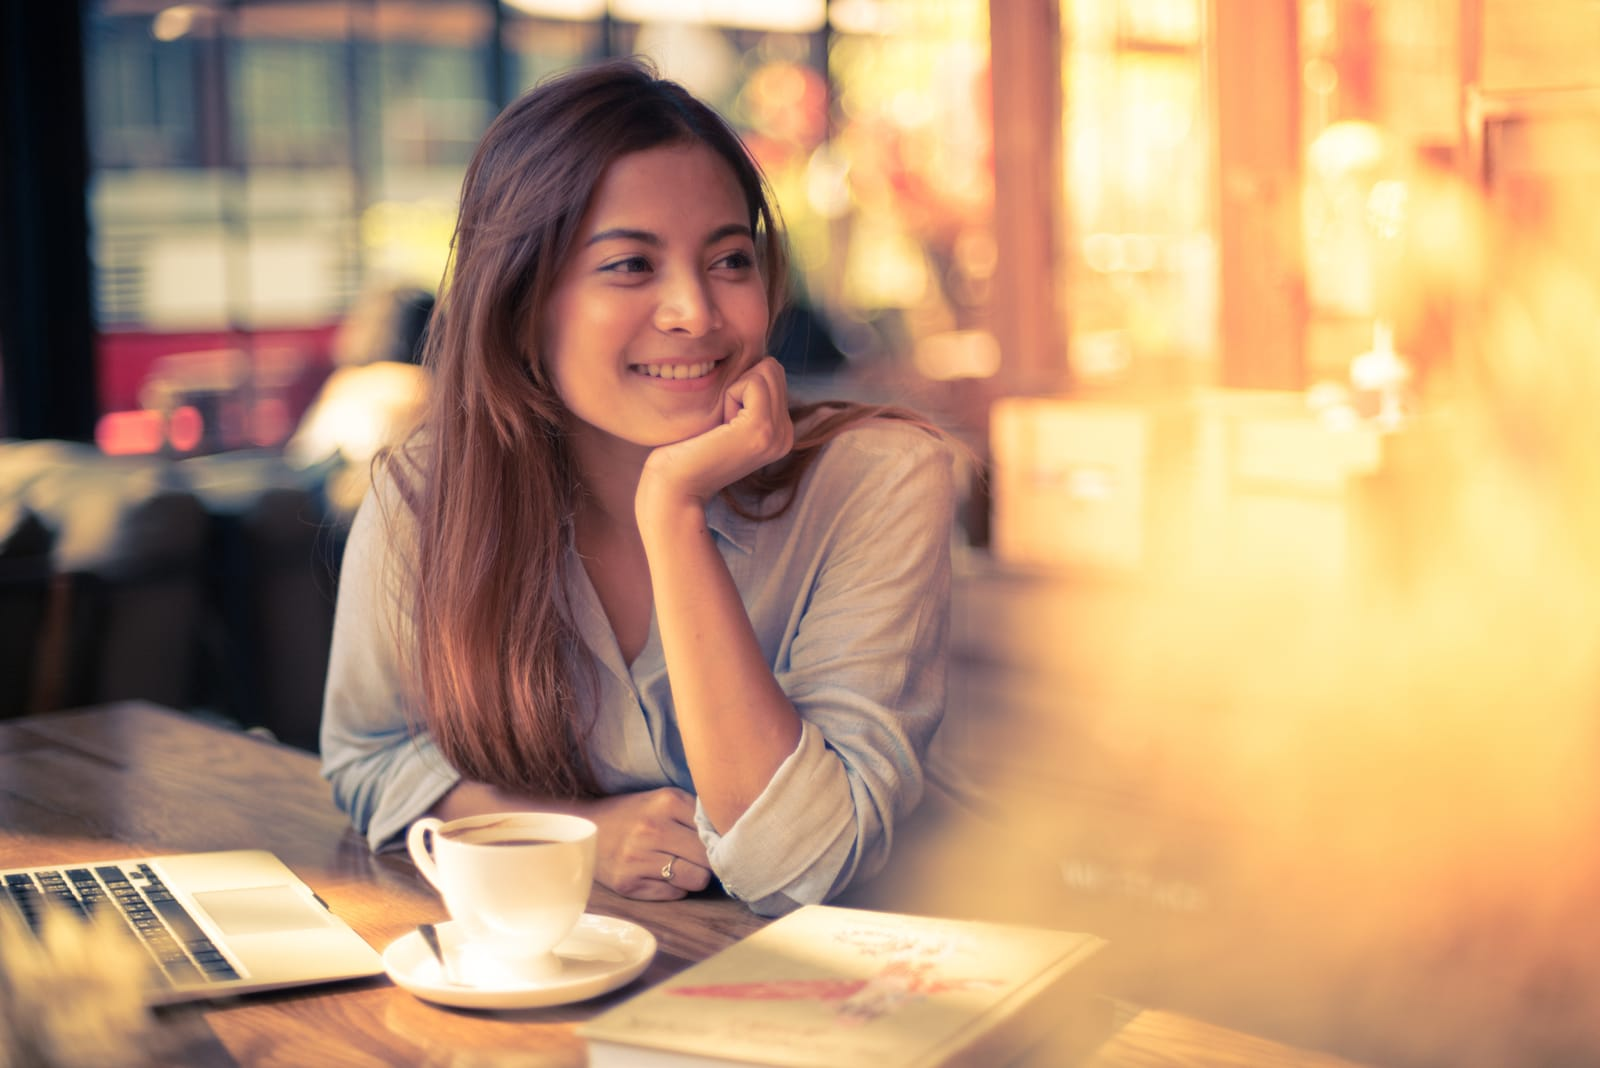 the woman sits drinking coffee and looks away